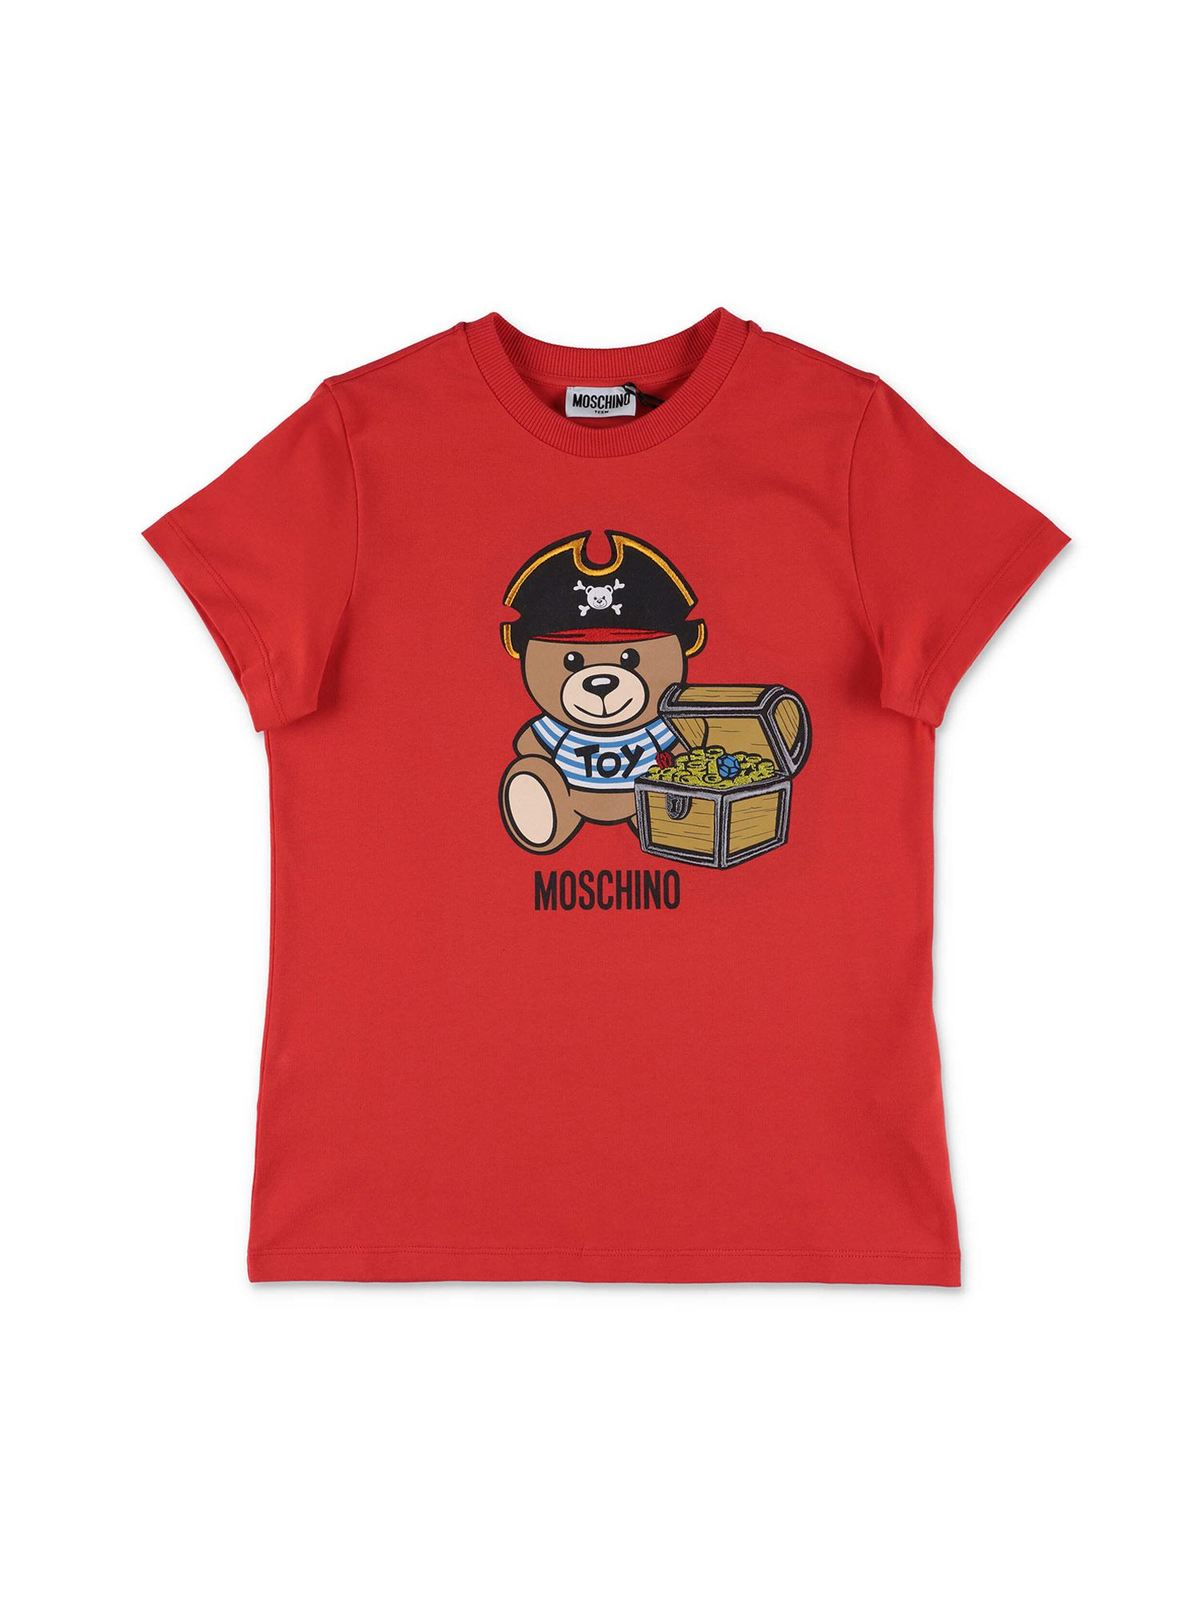 Moschino PIRATE TEDY BEAR T-SHIRT IN RED